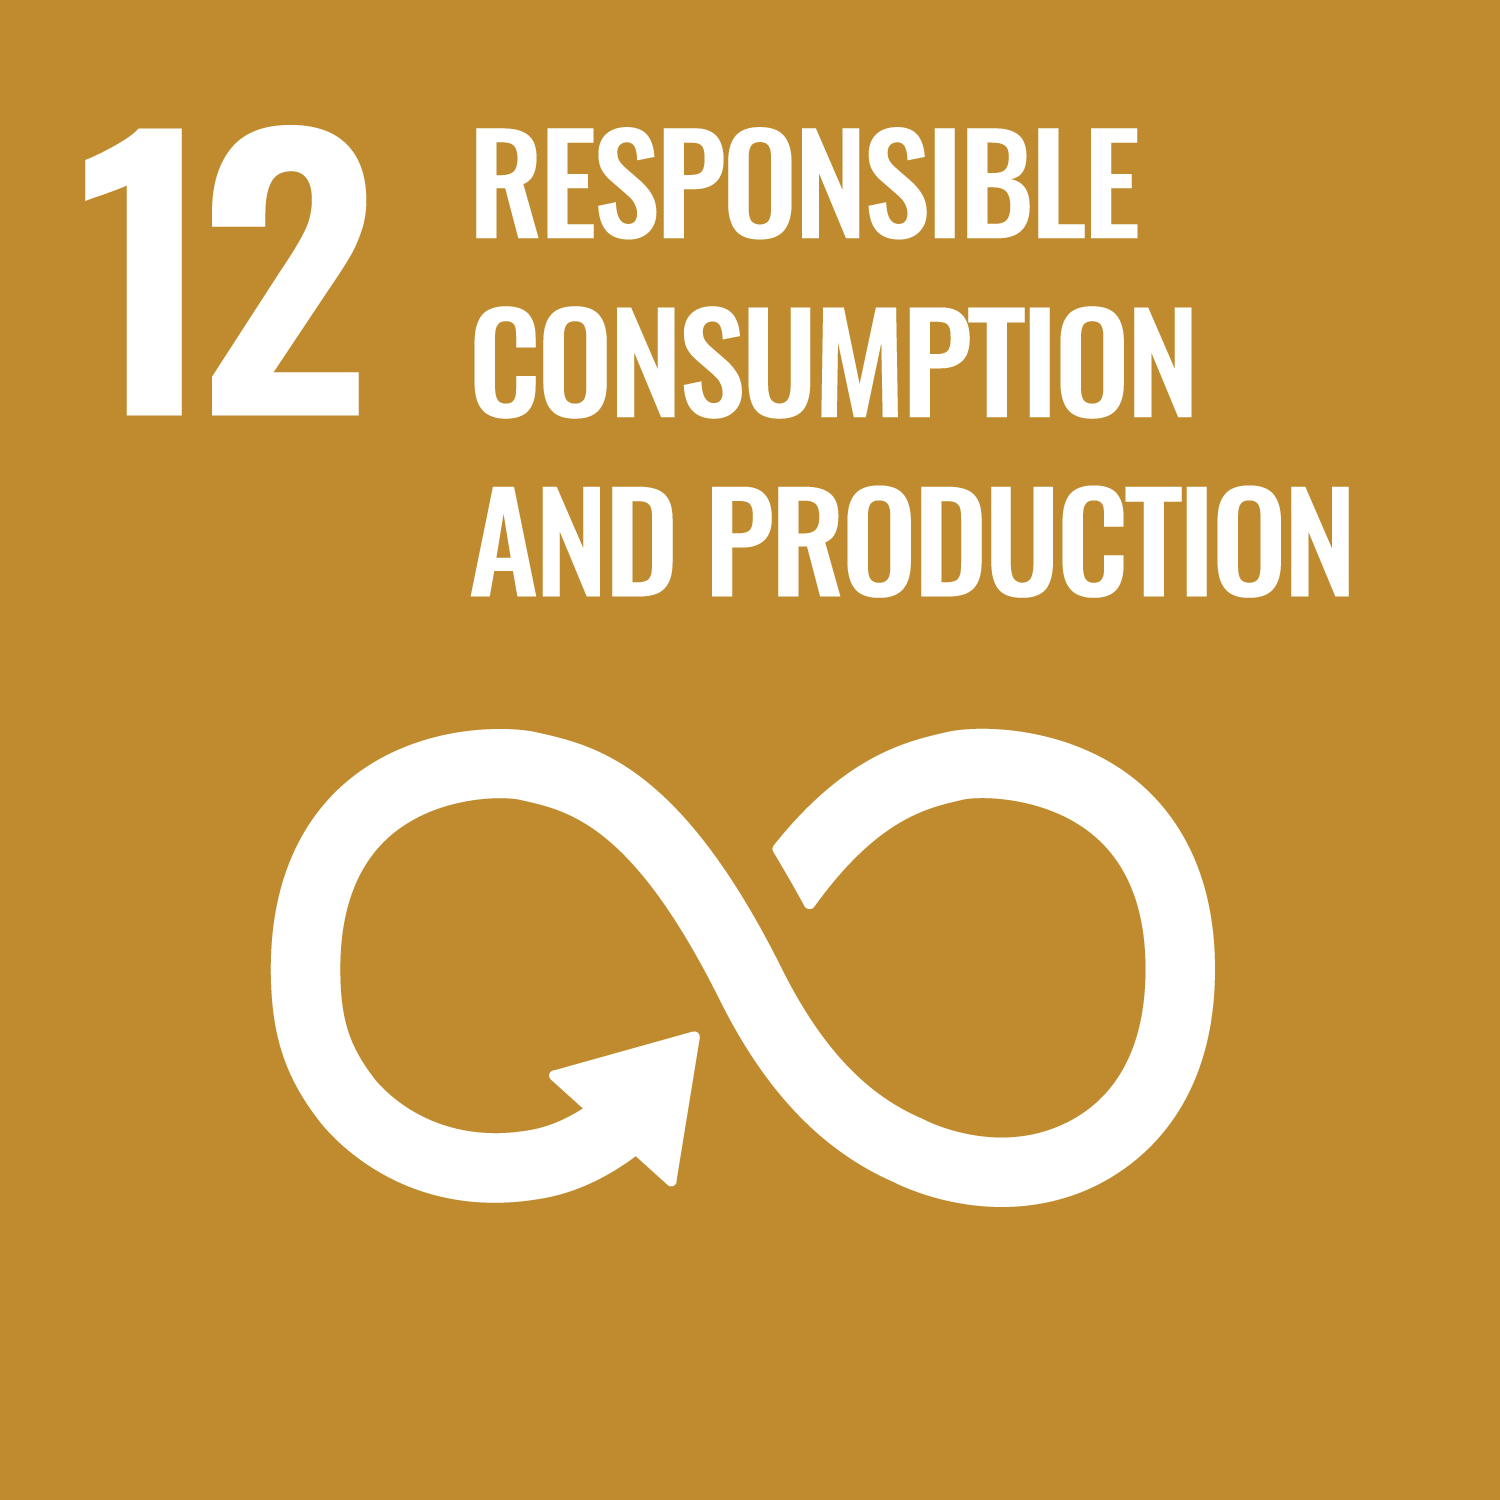 SDG 12 – Responsible consumtion and production